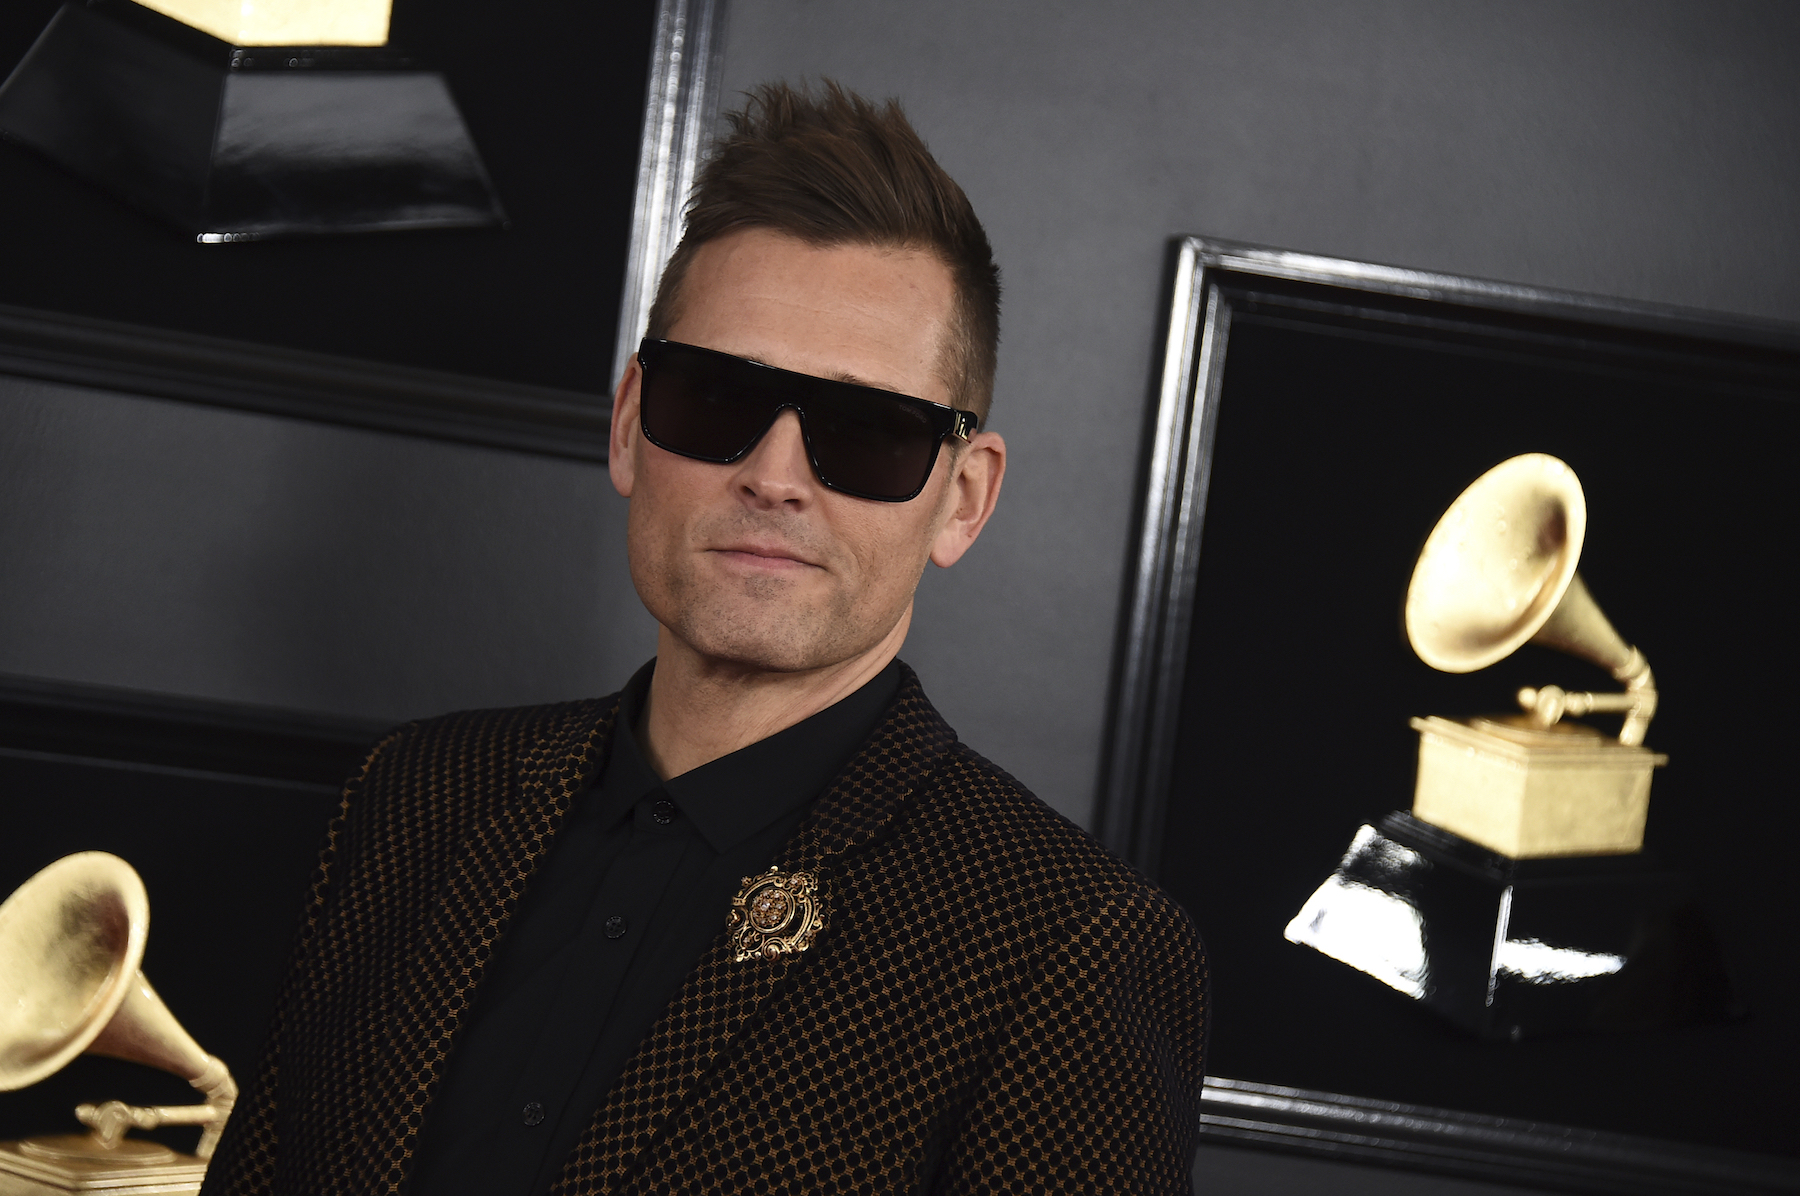 <div class='meta'><div class='origin-logo' data-origin='AP'></div><span class='caption-text' data-credit='Jordan Strauss/Invision/AP'>Kaskade arrives at the 61st annual Grammy Awards at the Staples Center on Sunday, Feb. 10, 2019, in Los Angeles.</span></div>